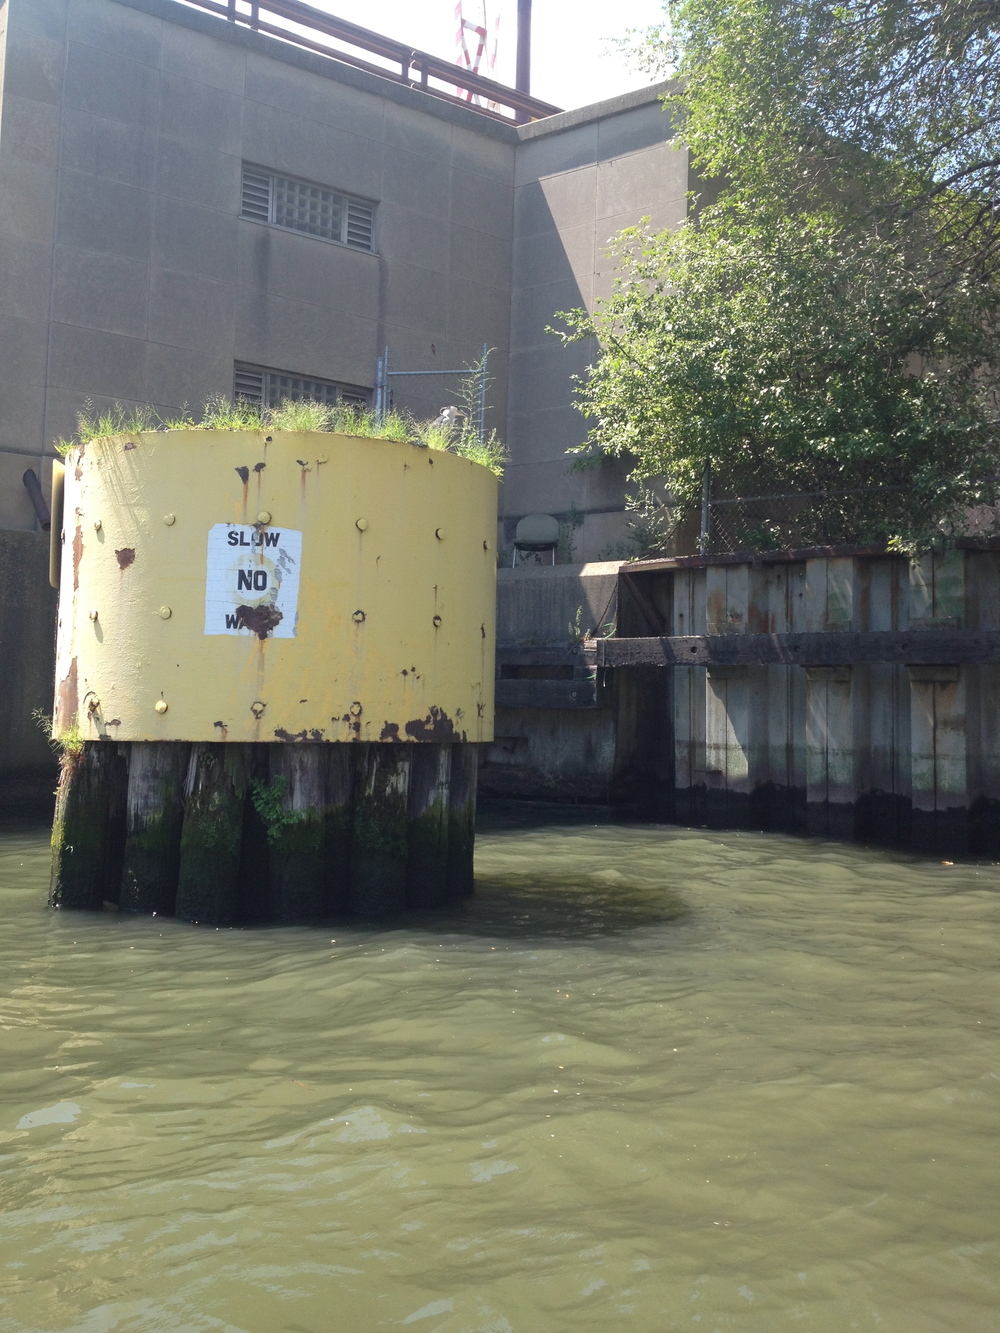 Piling protecting a Chicago River bridge (photo taken by Joshua Yellin)